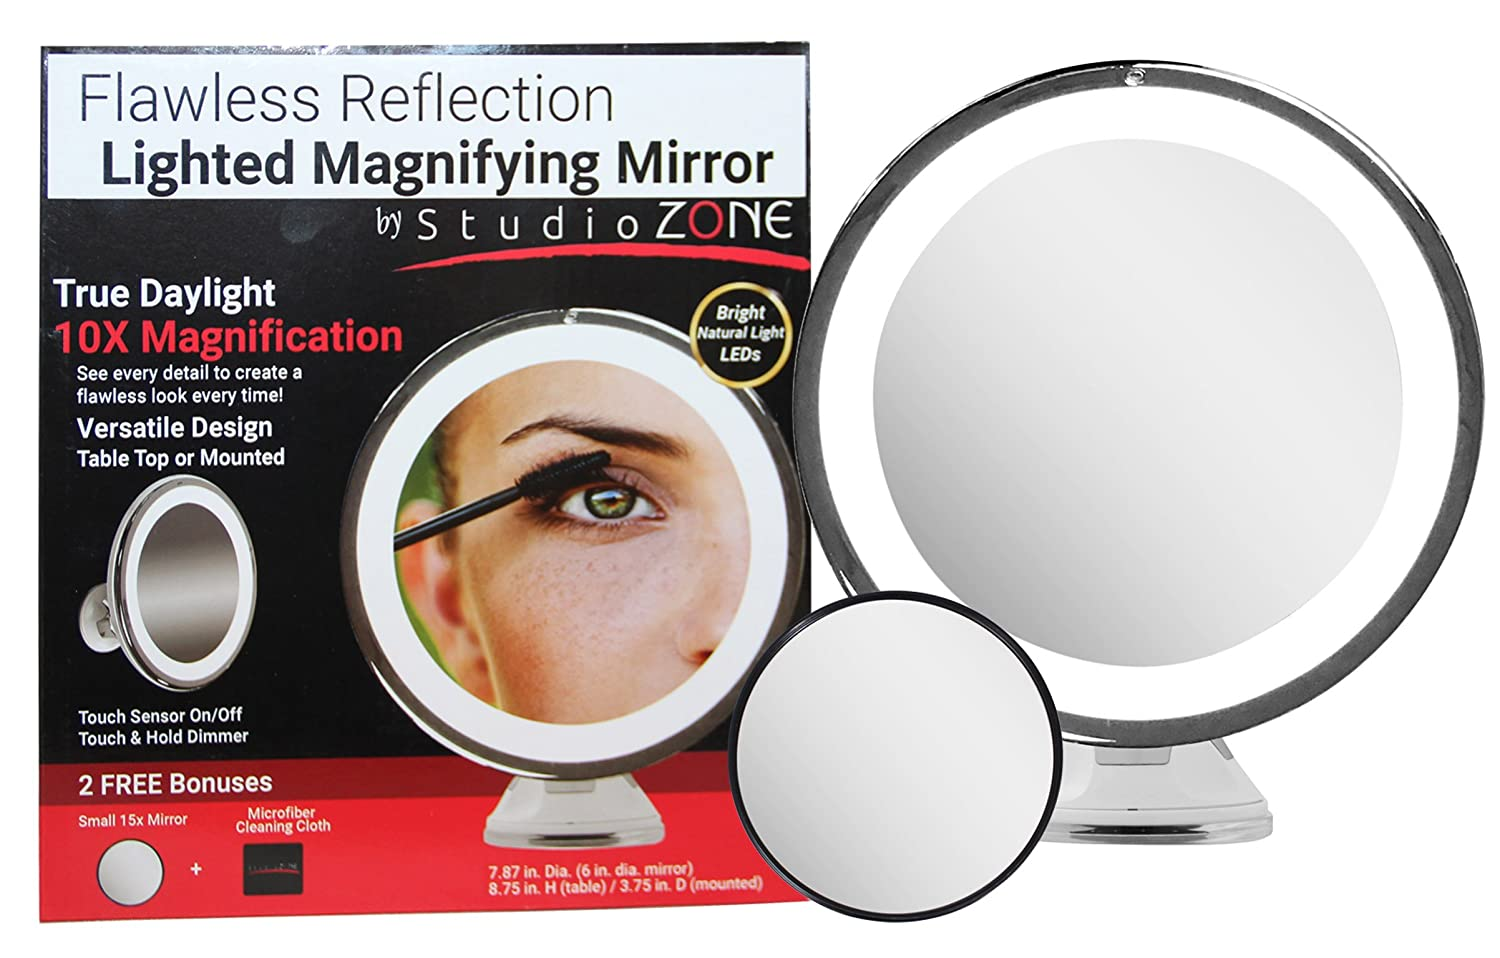 Amazon com   Lighted Makeup Mirror 10X Magnifying with True Daylight LED    Mount or Table Top   Touch   Dim   Cordless Home or Travel Vanity Bathroom  Set w. Amazon com   Lighted Makeup Mirror 10X Magnifying with True